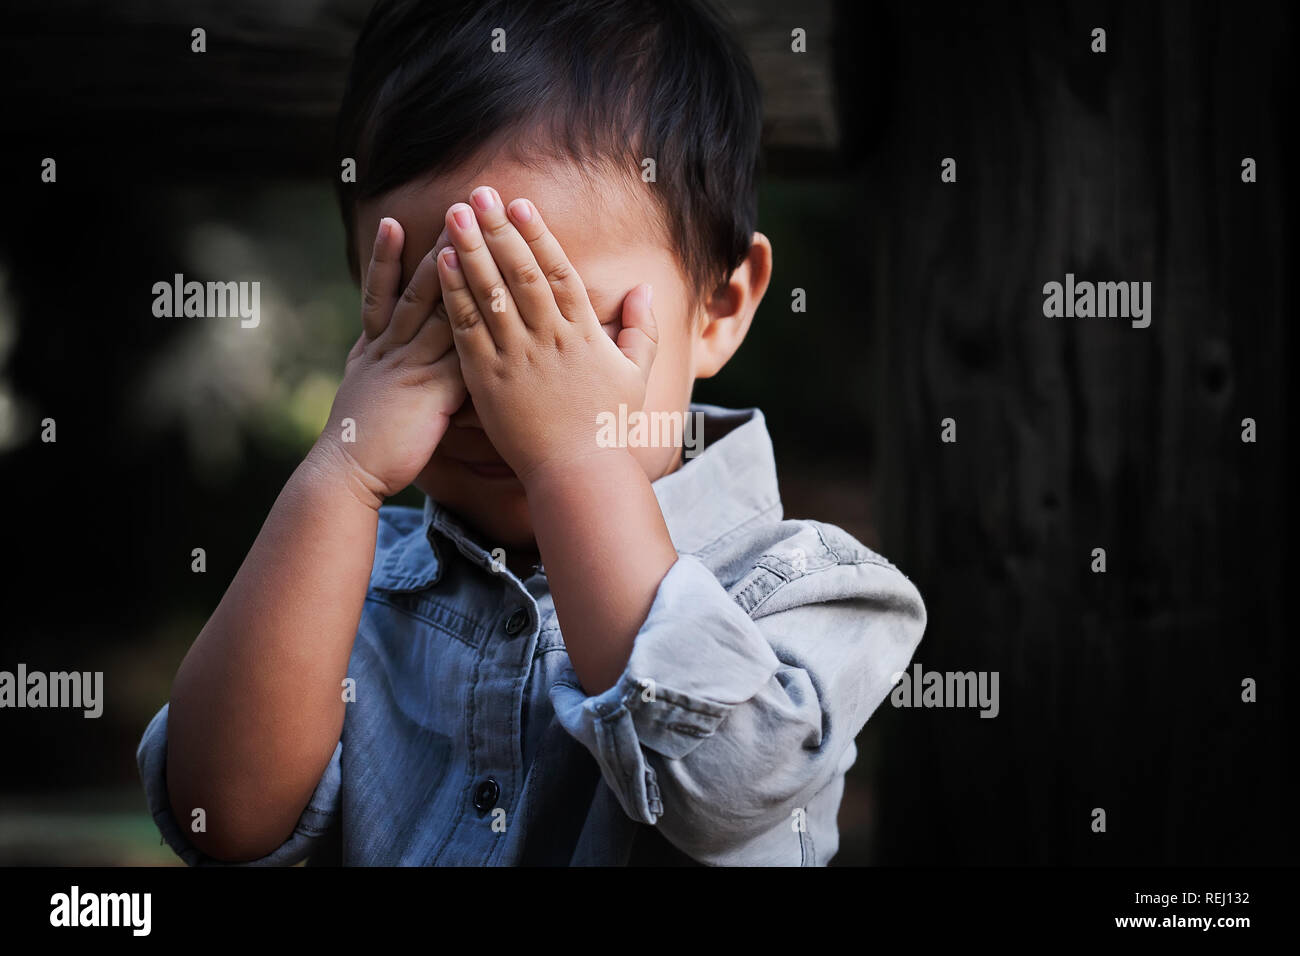 A young boy of toddler age covering his face with hands, showing signs of distress, fear and dissapointment. - Stock Image